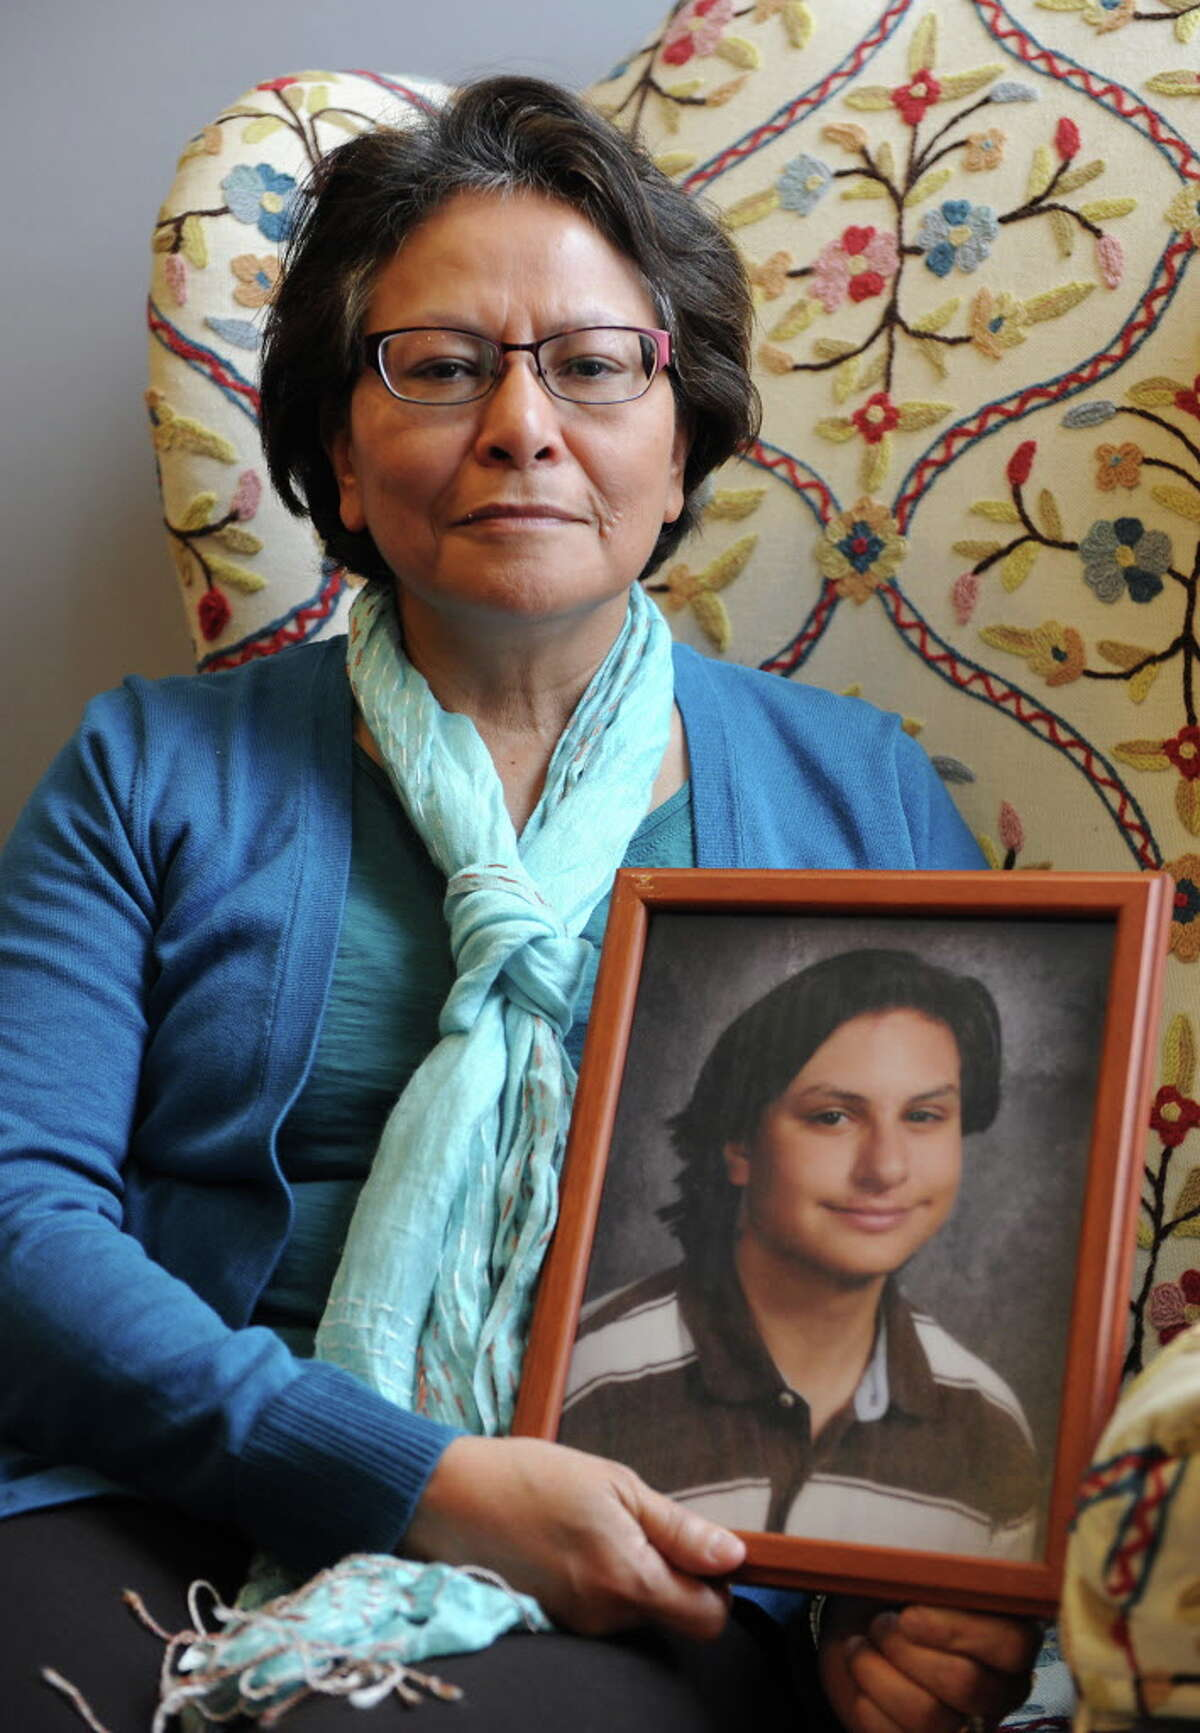 Alicia Barraza holds a framed photograph of her son in her home on Friday, Dec. 12, 2014 in Albany, N.Y. Alicia's son Benjamin Van Zandt hung himself in his prison cell last month at age 21. He had a history of mental illness and was sent to state prison at 17 for arson. (Lori Van Buren / Times Union)